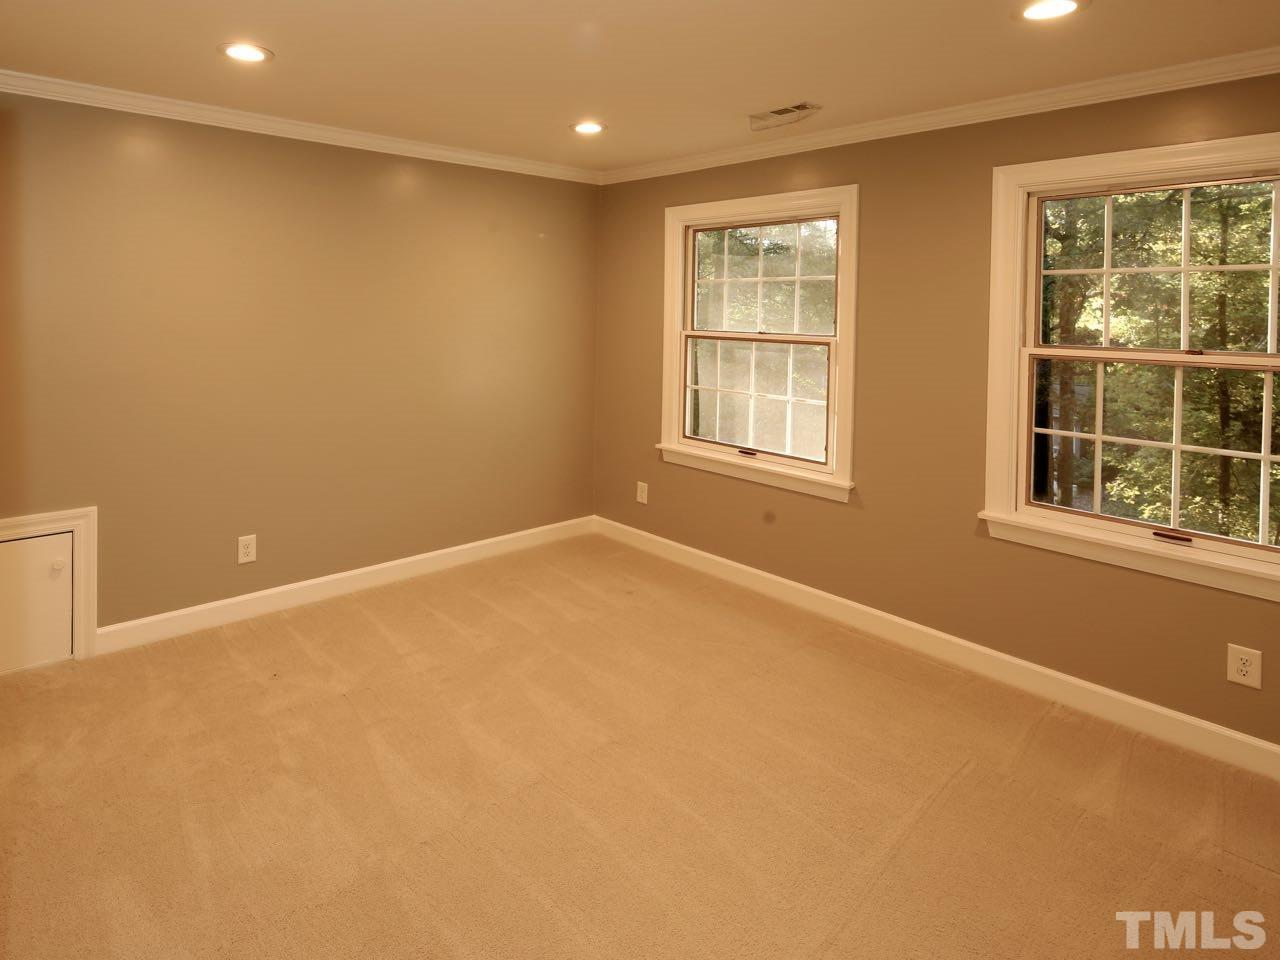 The entire house was recently painted. Eggshell sheen. The colors are vibrant and classy.